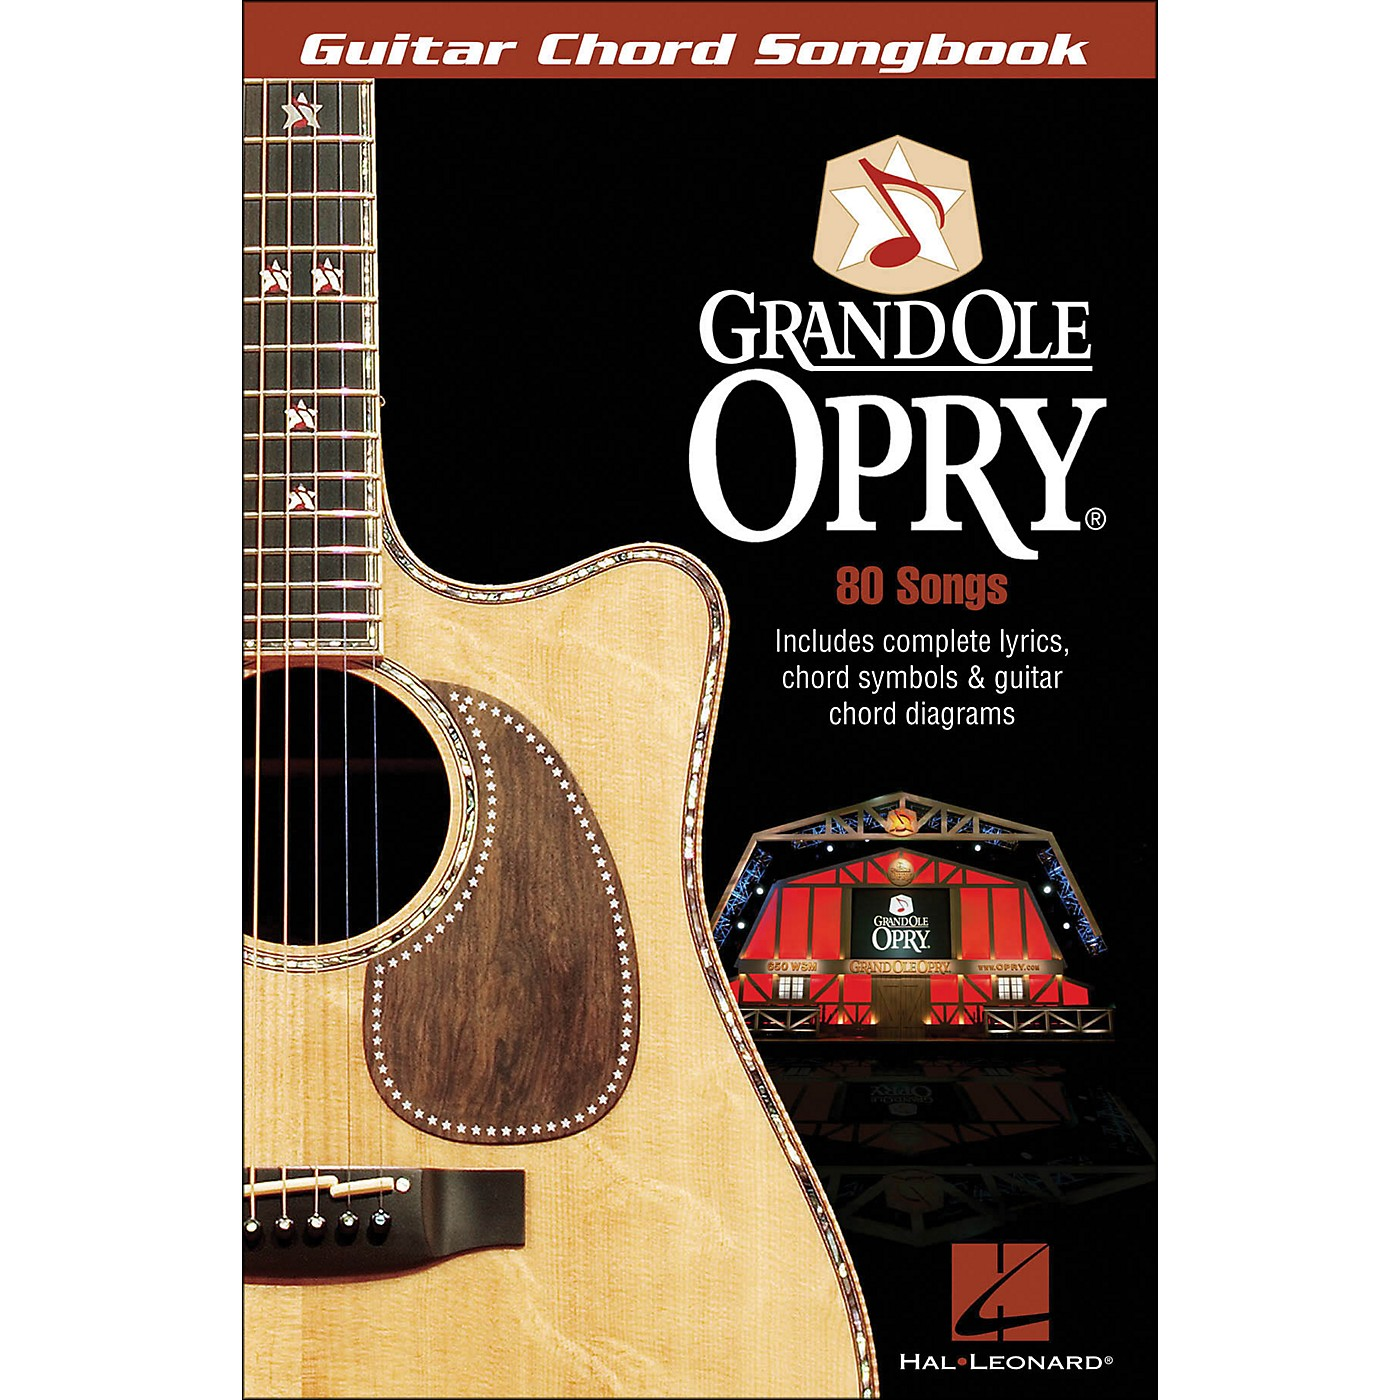 Hal Leonard The Grand Ole Opry Guitar Chord Songbook thumbnail